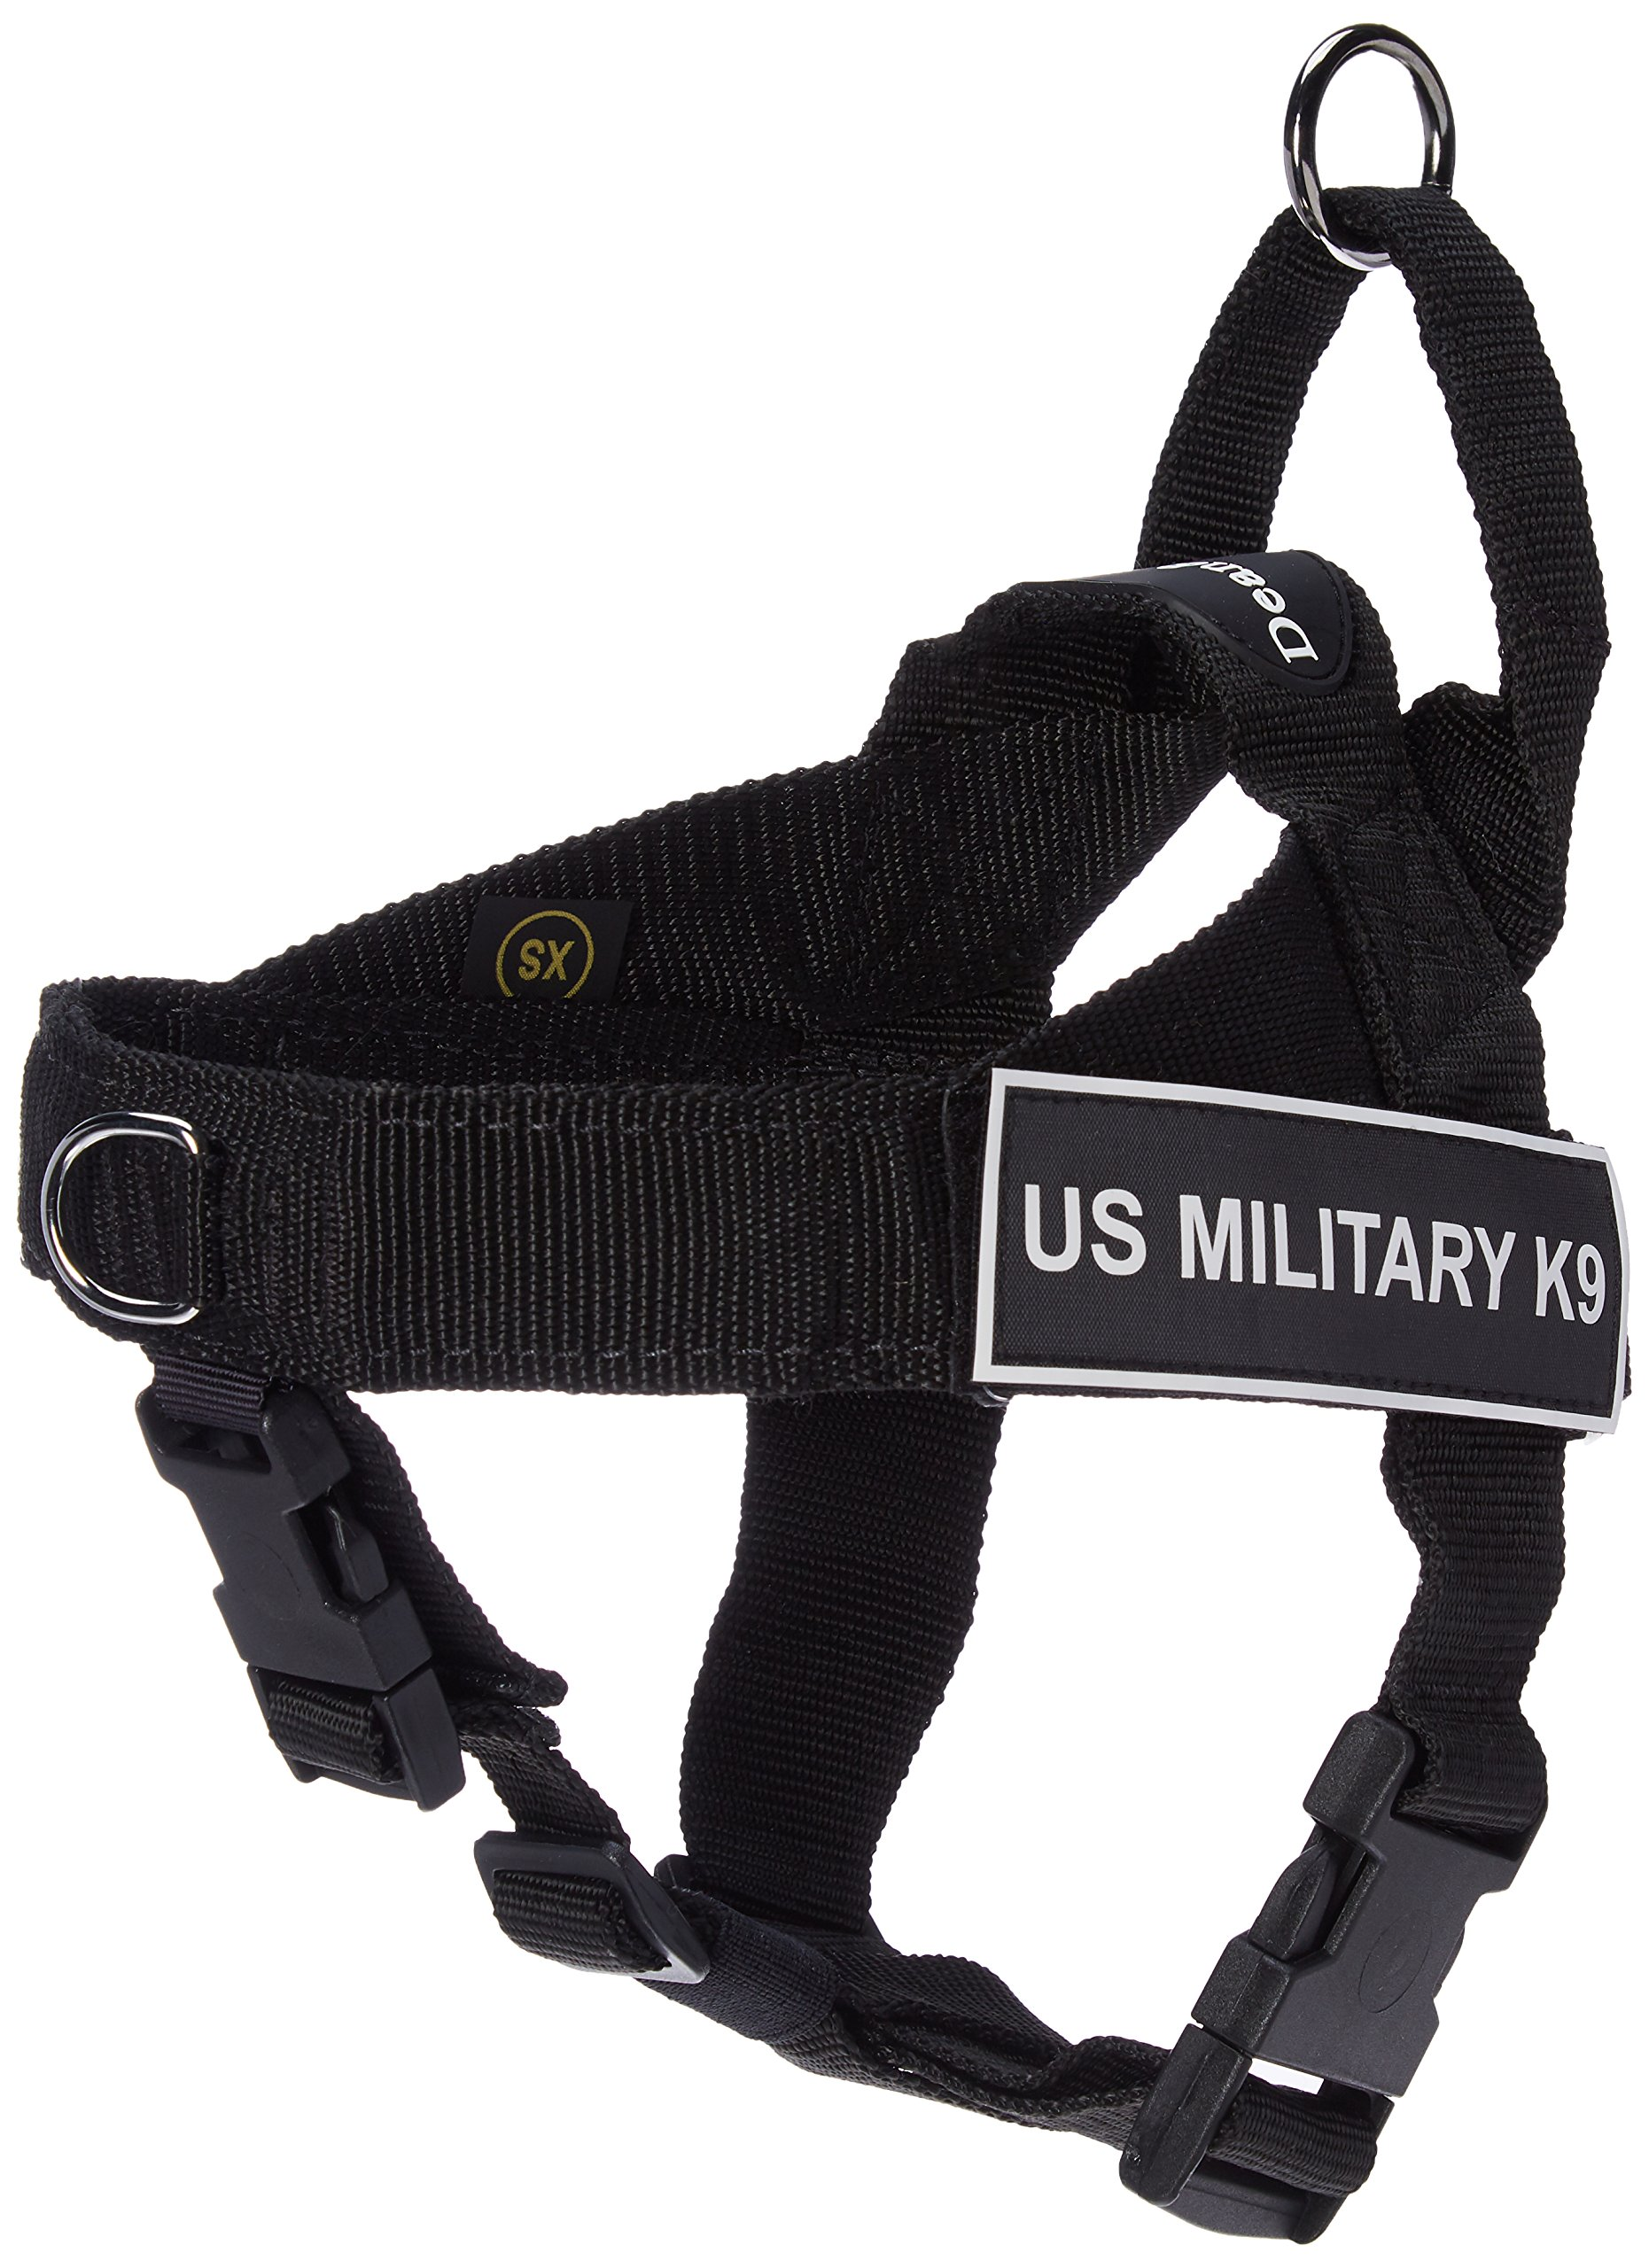 Dean & Tyler Universal No Pull 21-Inch to 25-Inch Dog Harness, X-Small, US Military K9, Black